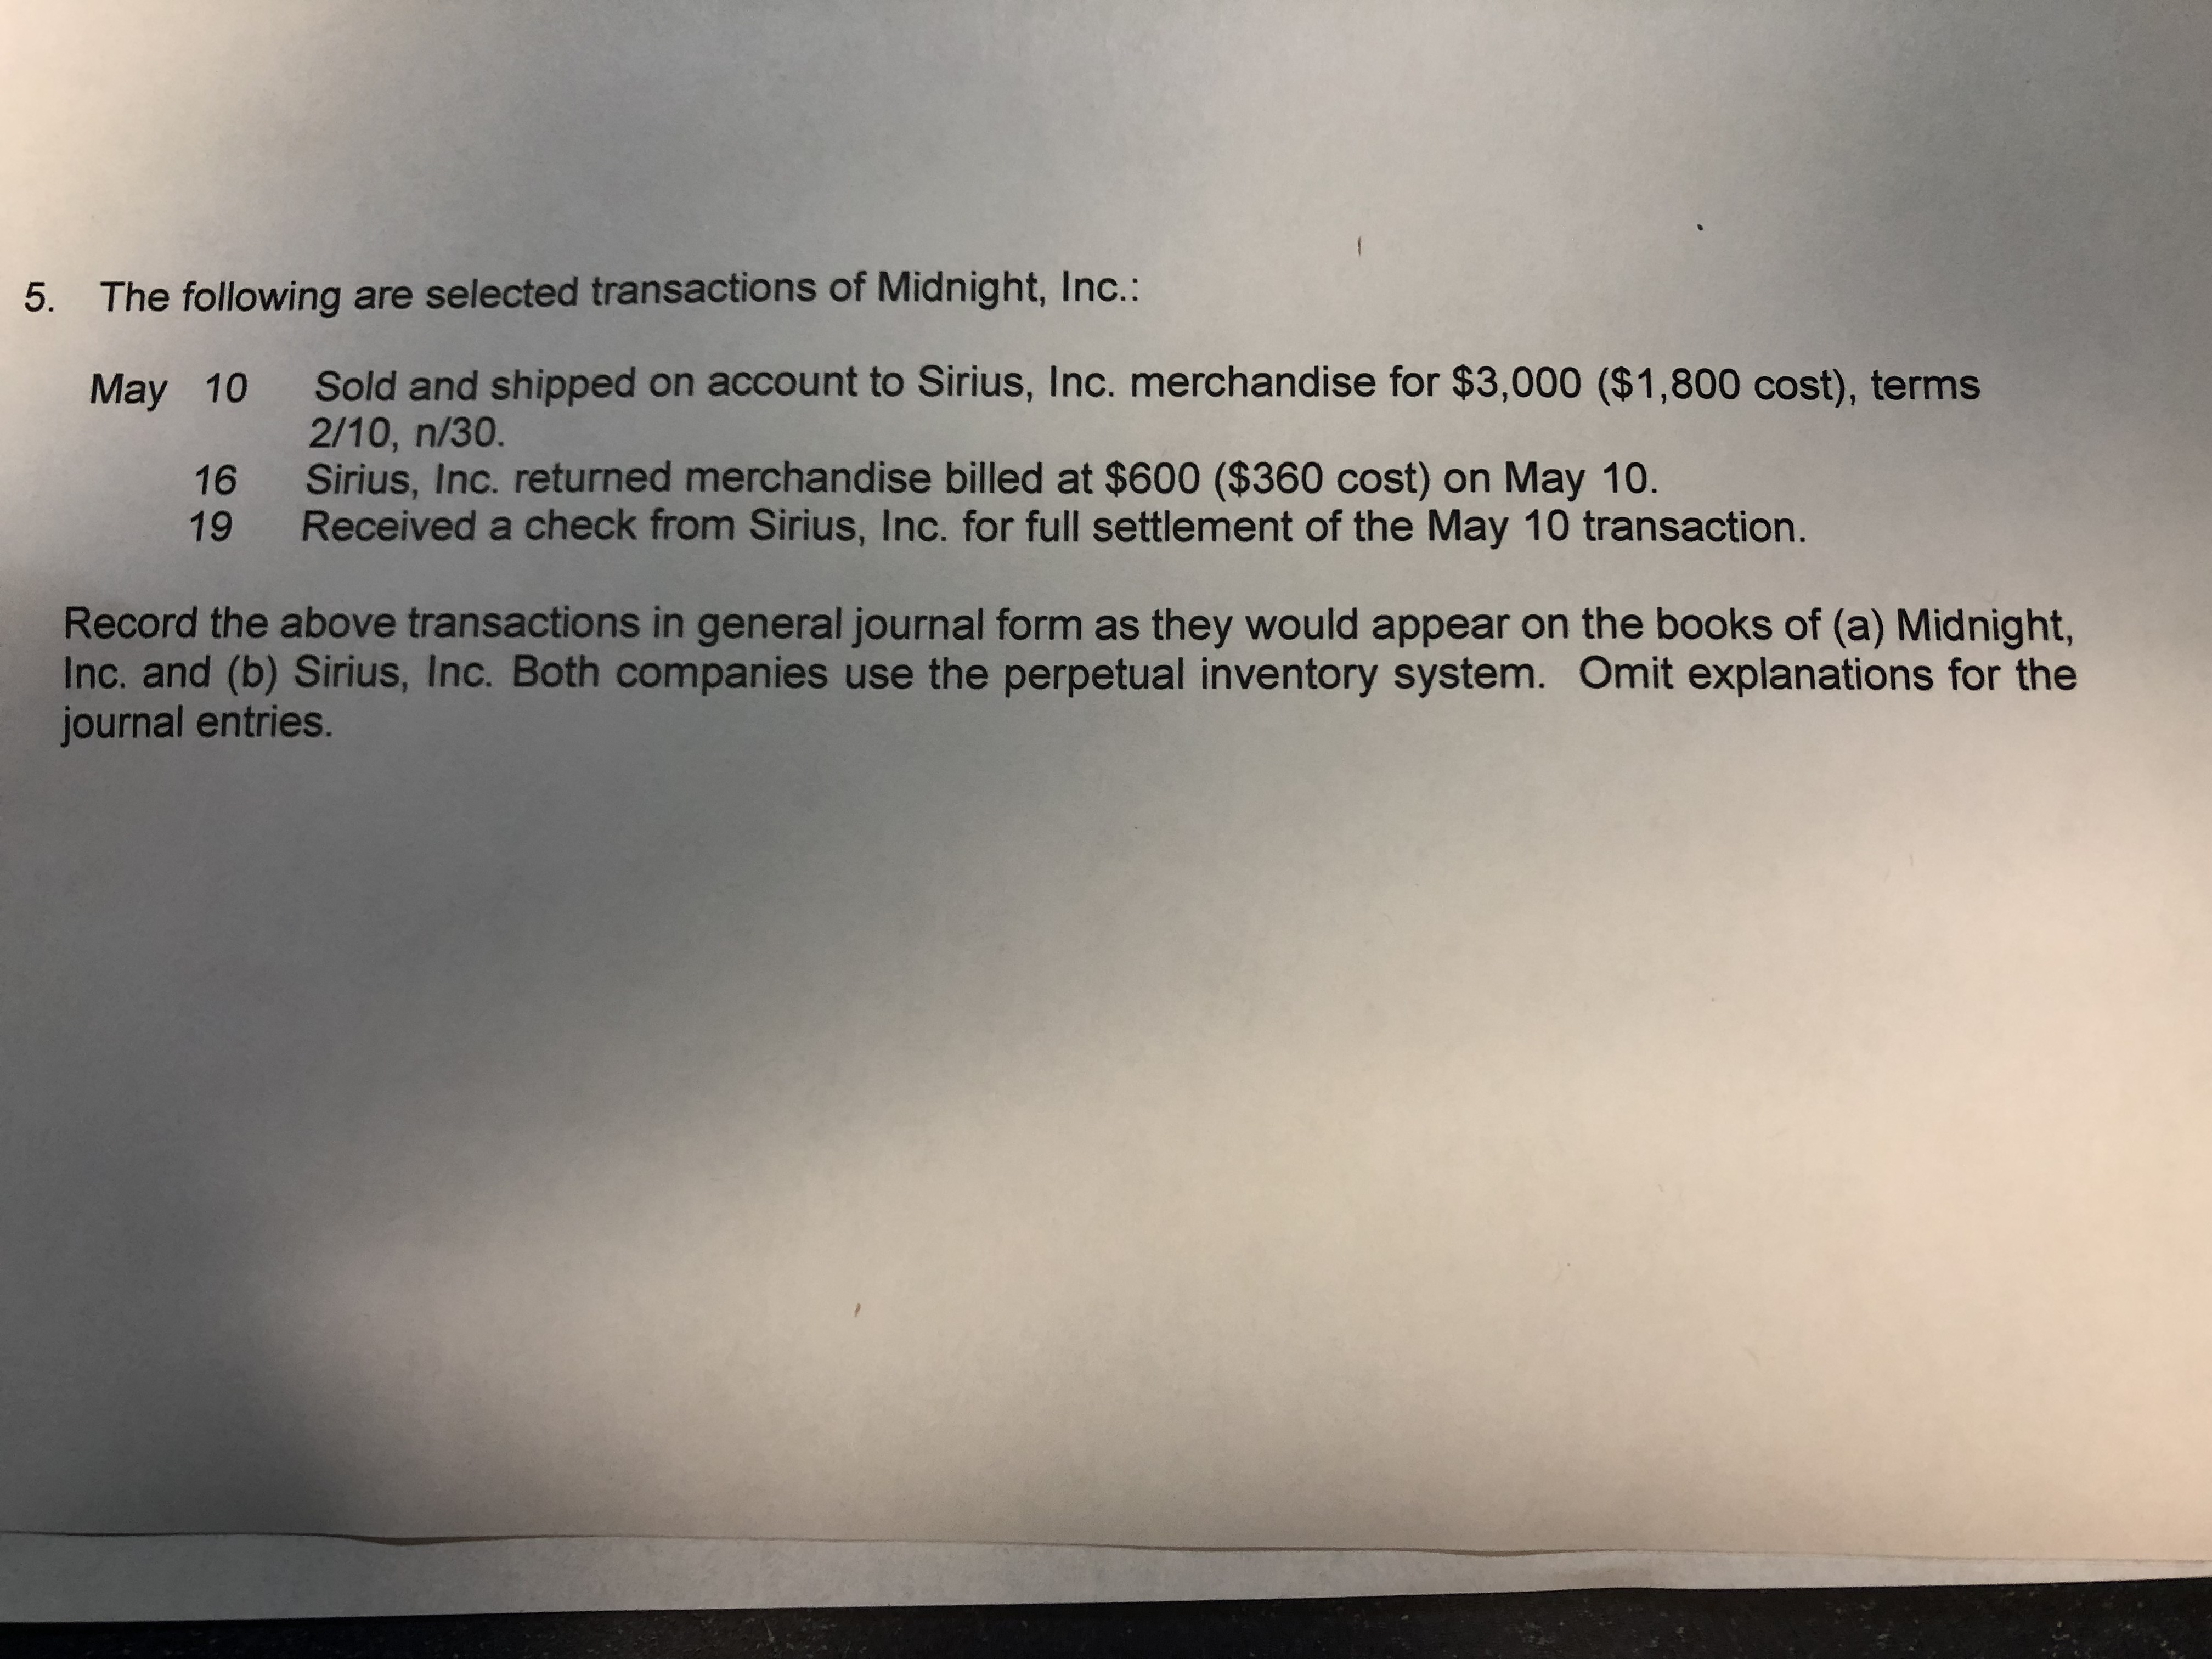 5. The following are selected transactions of Midnight, Inc.: Sold and shipped on account to Sirius, Inc. merchandise for $3,000 ($1,800 cost), terms 2/10, n/30. Sirius, Inc. returned merchandise billed at $600 ($360 cost) on May 10. Received a check from Sirius, Inc. for full settlement of the May 10 transaction. May 10 16 19 Record the above transactions in general journal form as they would appear on the books of (a) Midnight, Inc. and (b) Sirius, Inc. Both companies use the perpetual inventory system. Omit explanations for the journal entries.